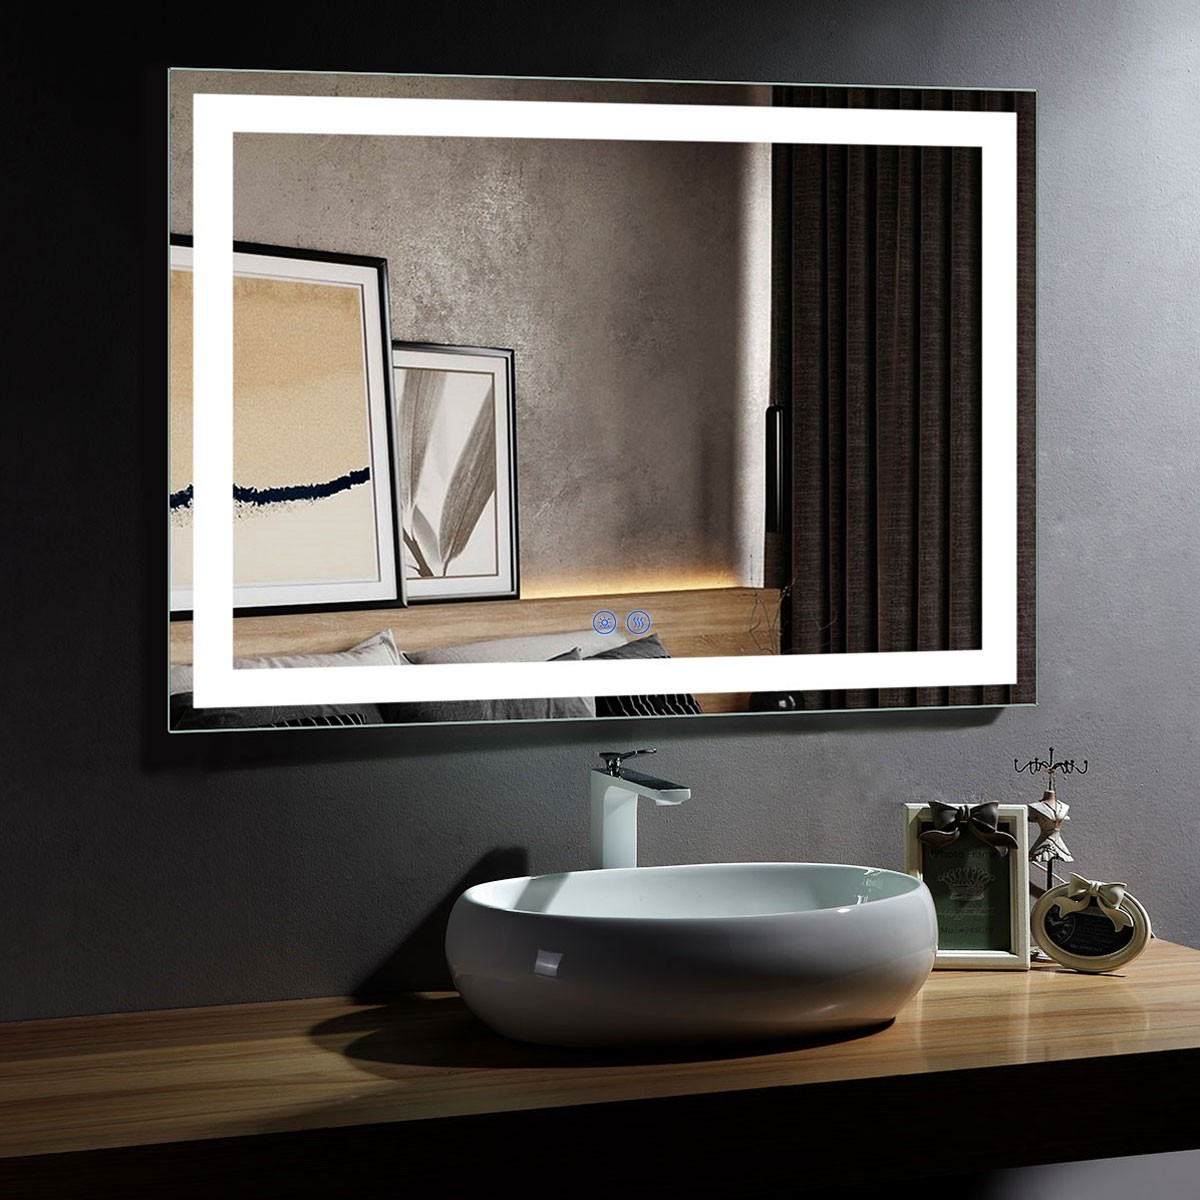 DECORAPORT 48 x 36 In LED Bathroom Mirror with Touch Button, Anti-Fog, Dimmable, Vertical & Horizontal Mount (CT07-4836)